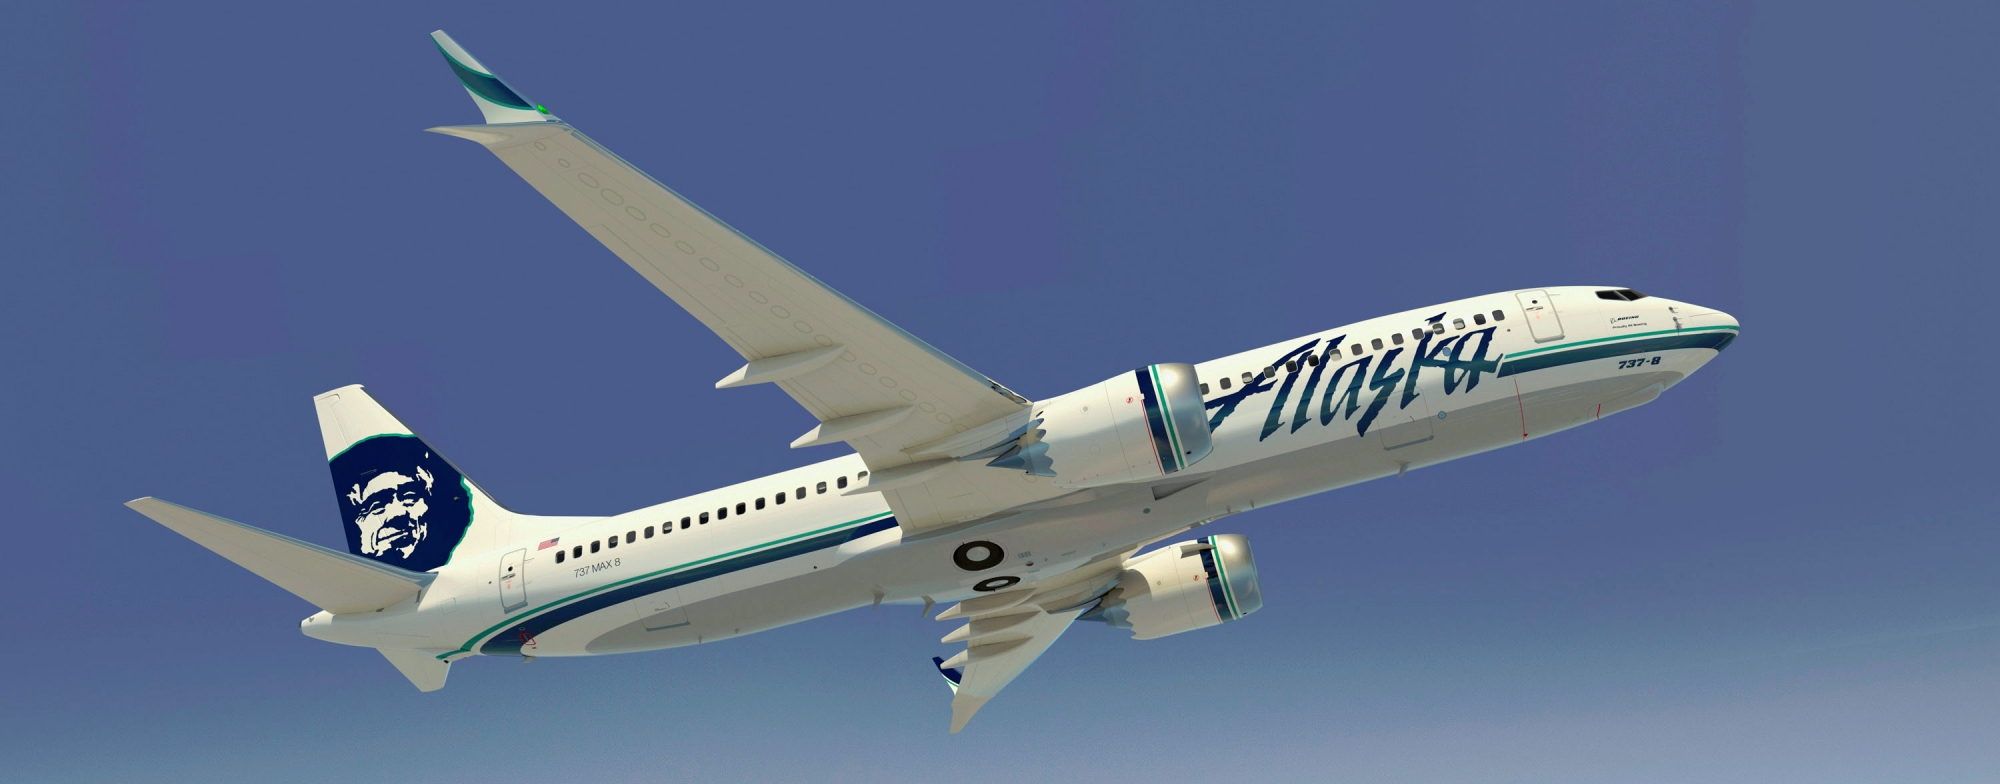 Alaska Airlines Maiden B737 Max Due For Early Delivery